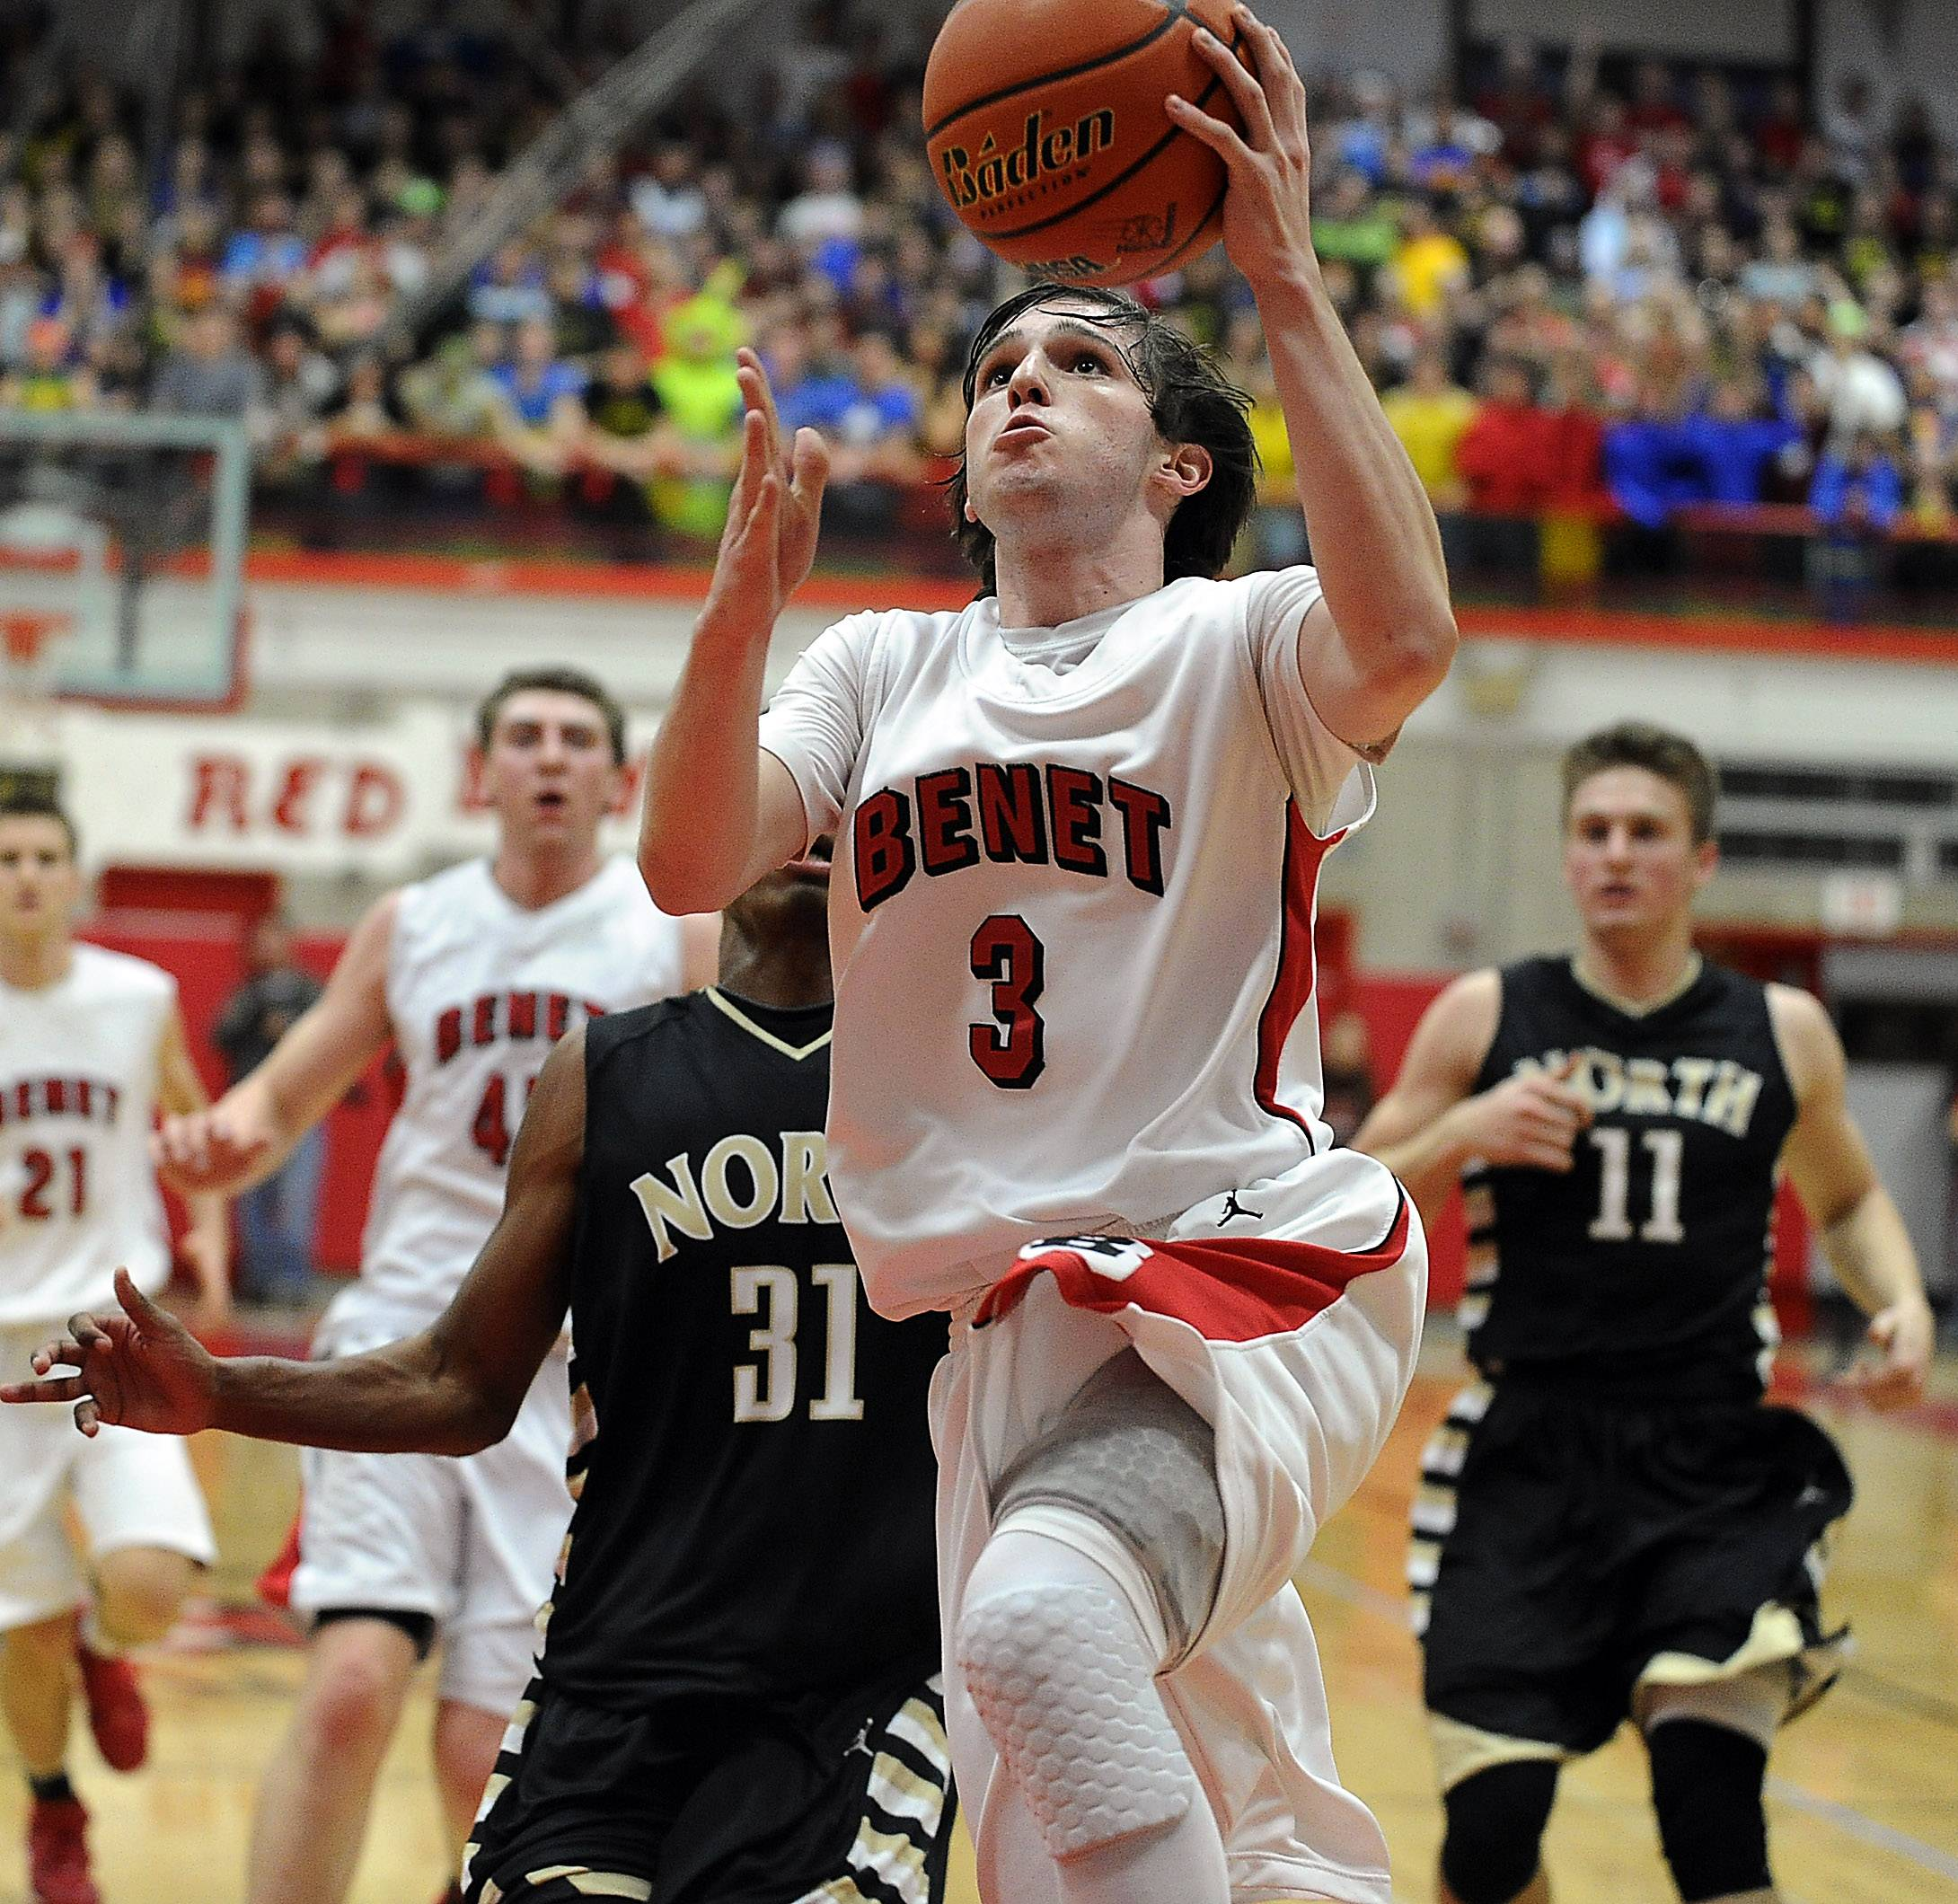 Scouting the Class 4A semifinals: Benet vs. Edwardsville